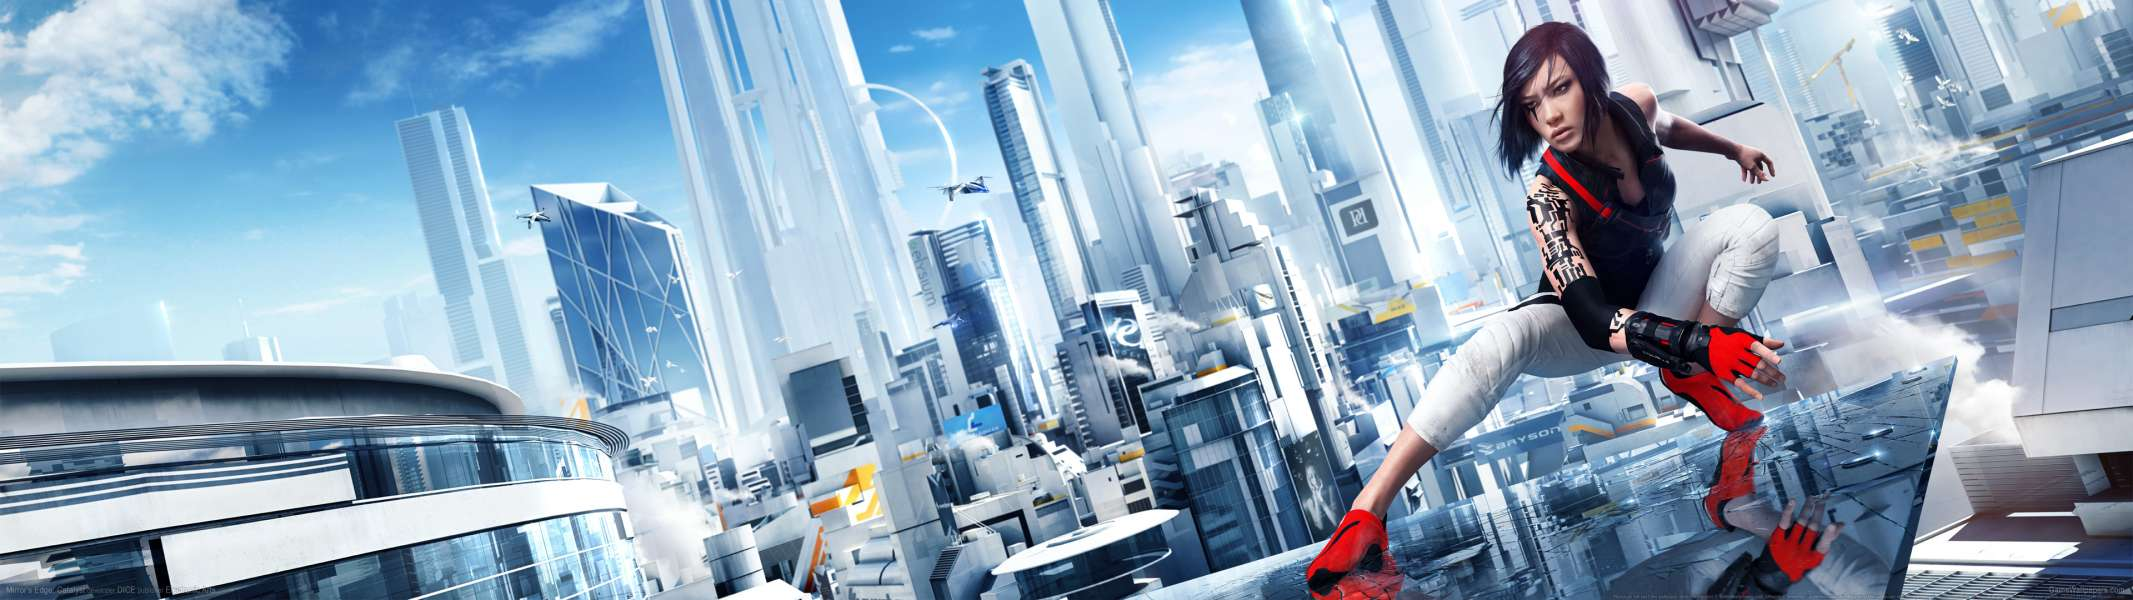 Mirror's Edge: Catalyst dual screen achtergrond